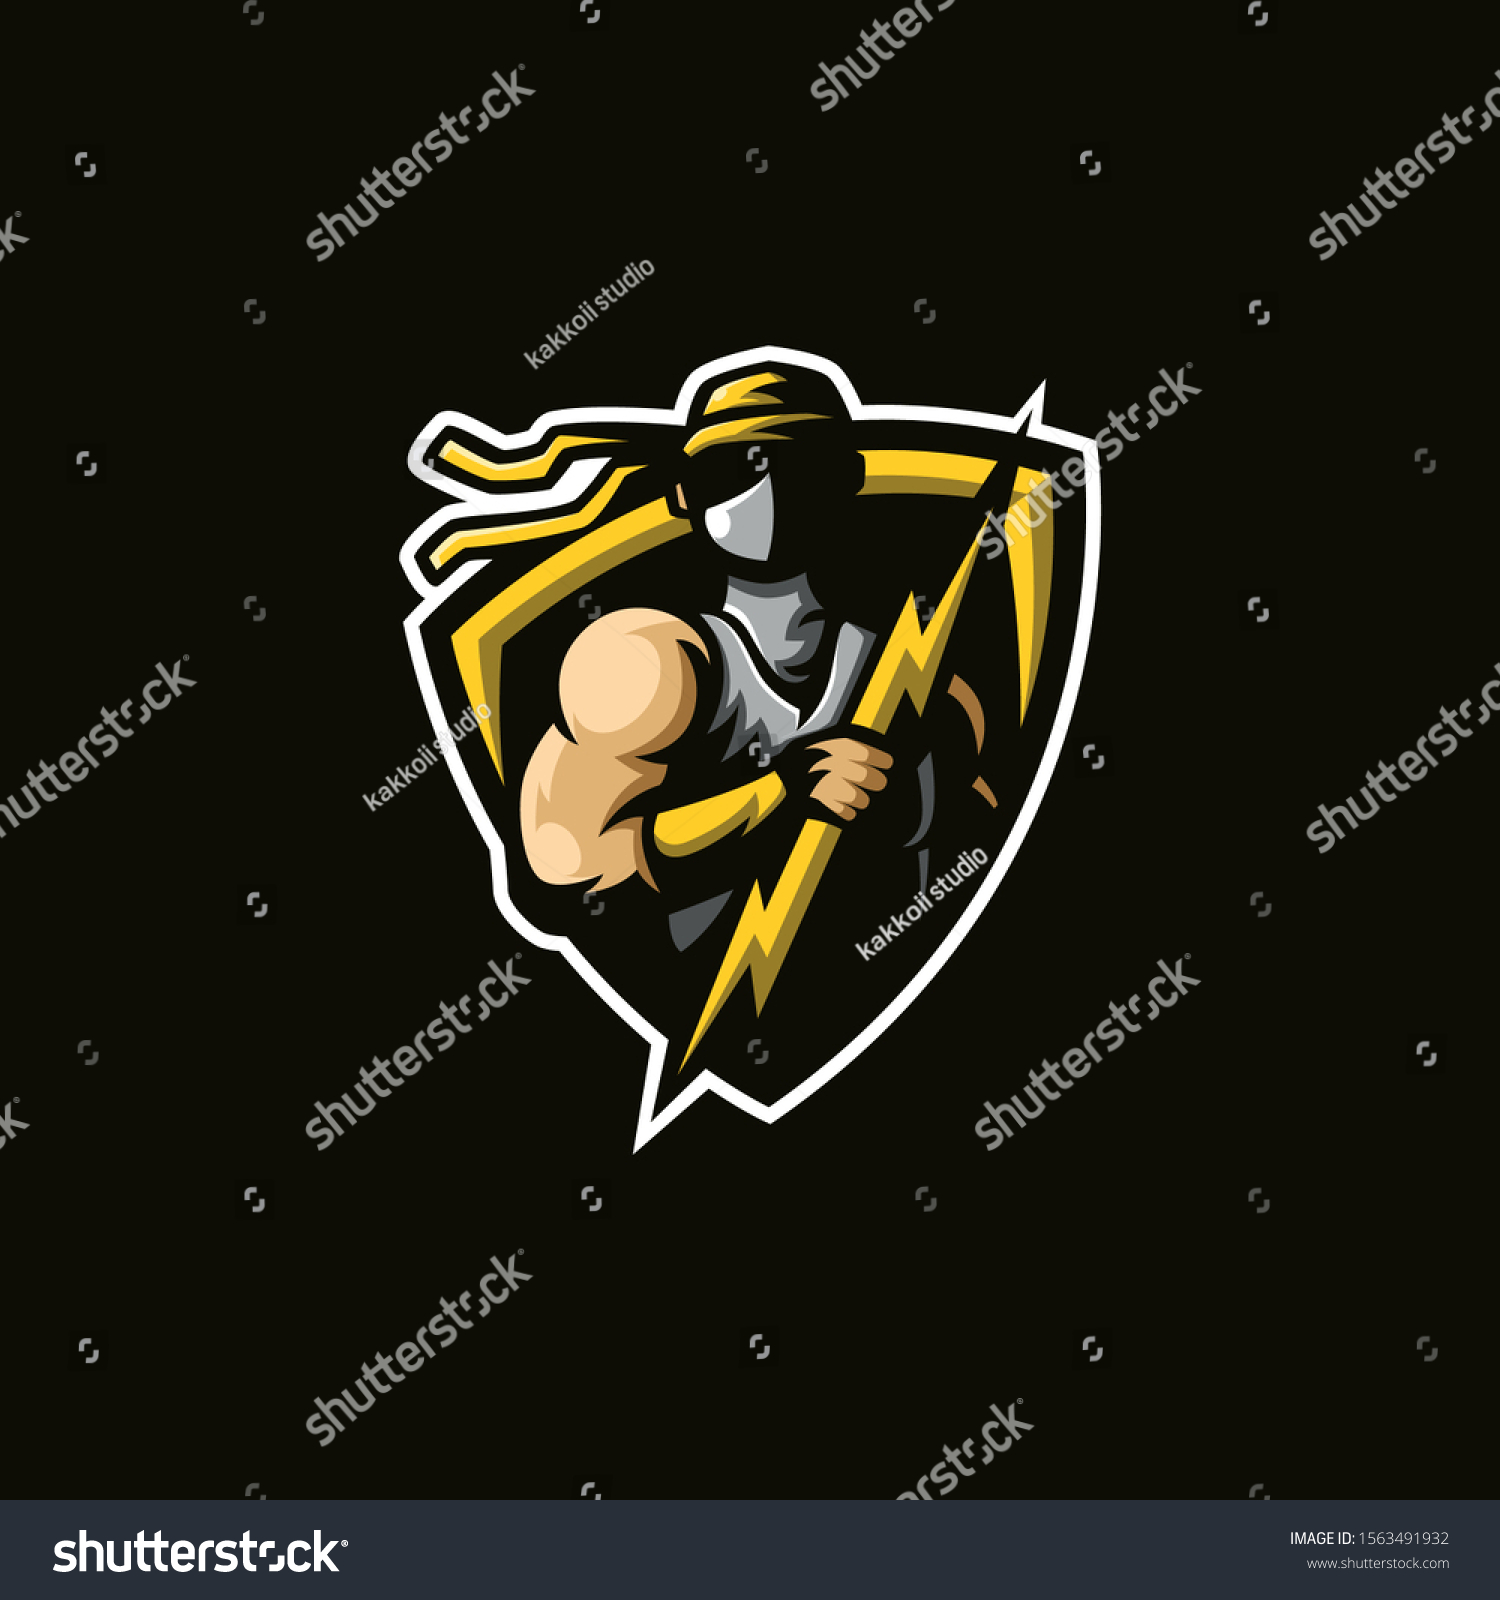 mascot logo god thunder vector illustration stock vector royalty free 1563491932 shutterstock